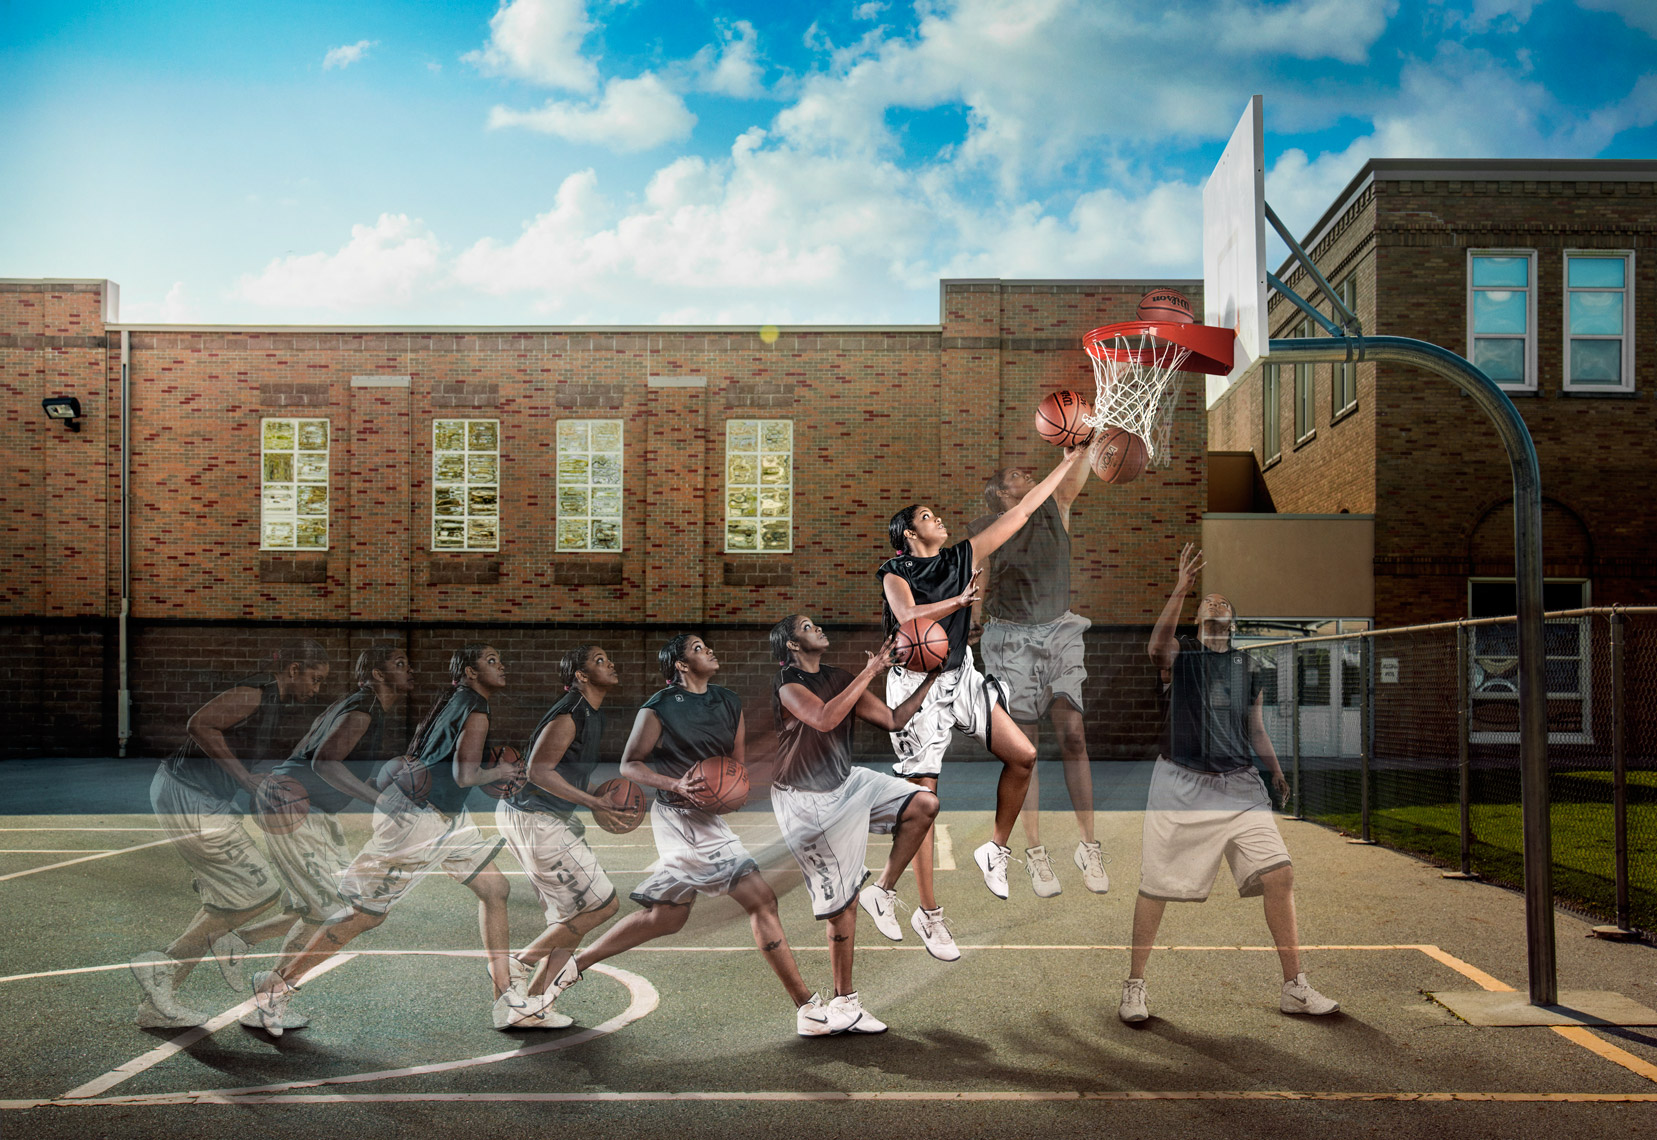 Basketball-Dunk-Sequence-for-Franklin-Institute-photographer-Ryan-Donnell-Final